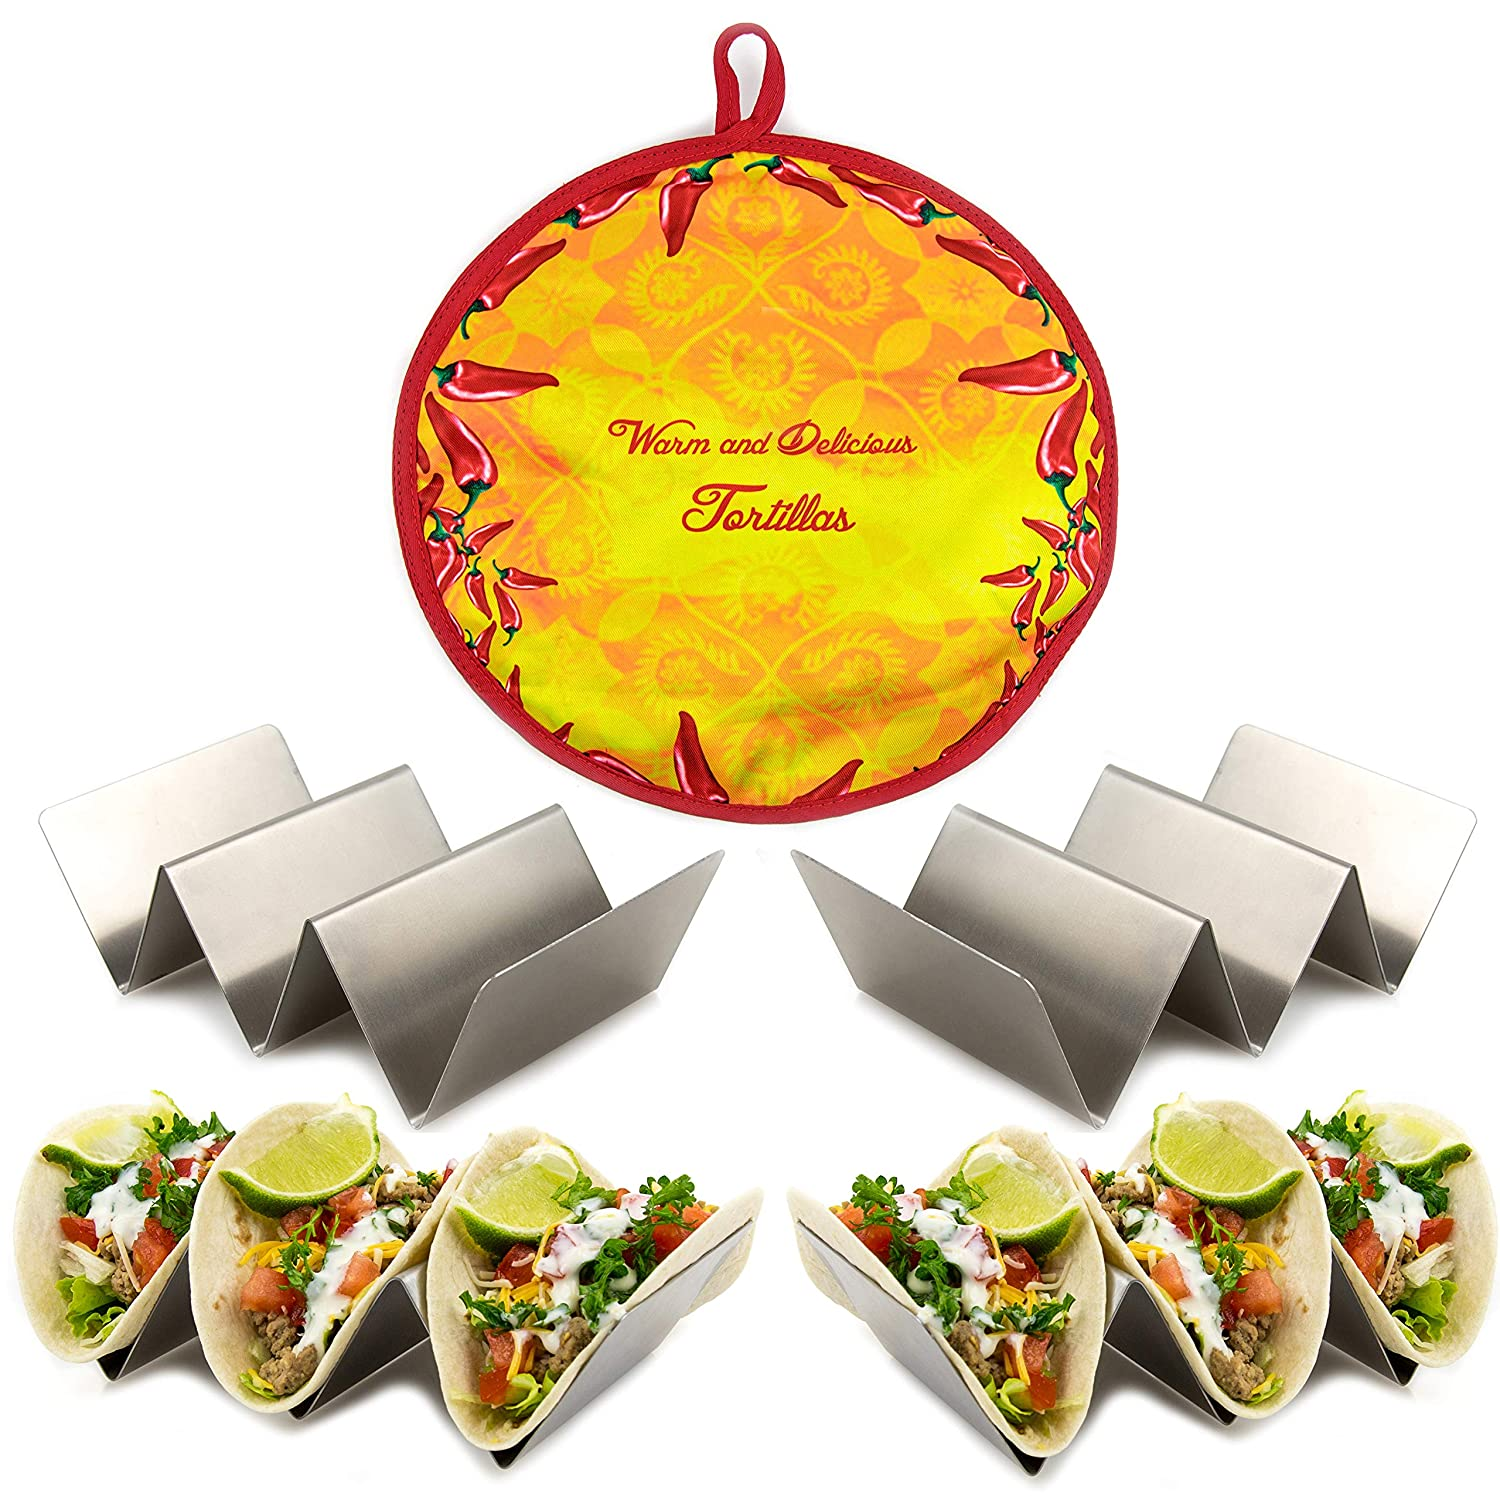 4 pack Taco Holder & Tortilla Warmer in one Premium Set – Stainless Steel Taco Racks that holds 3 Tacos each with a Pouch Bread Warmer that holds up to 12 tortillas Nasema Kitchen